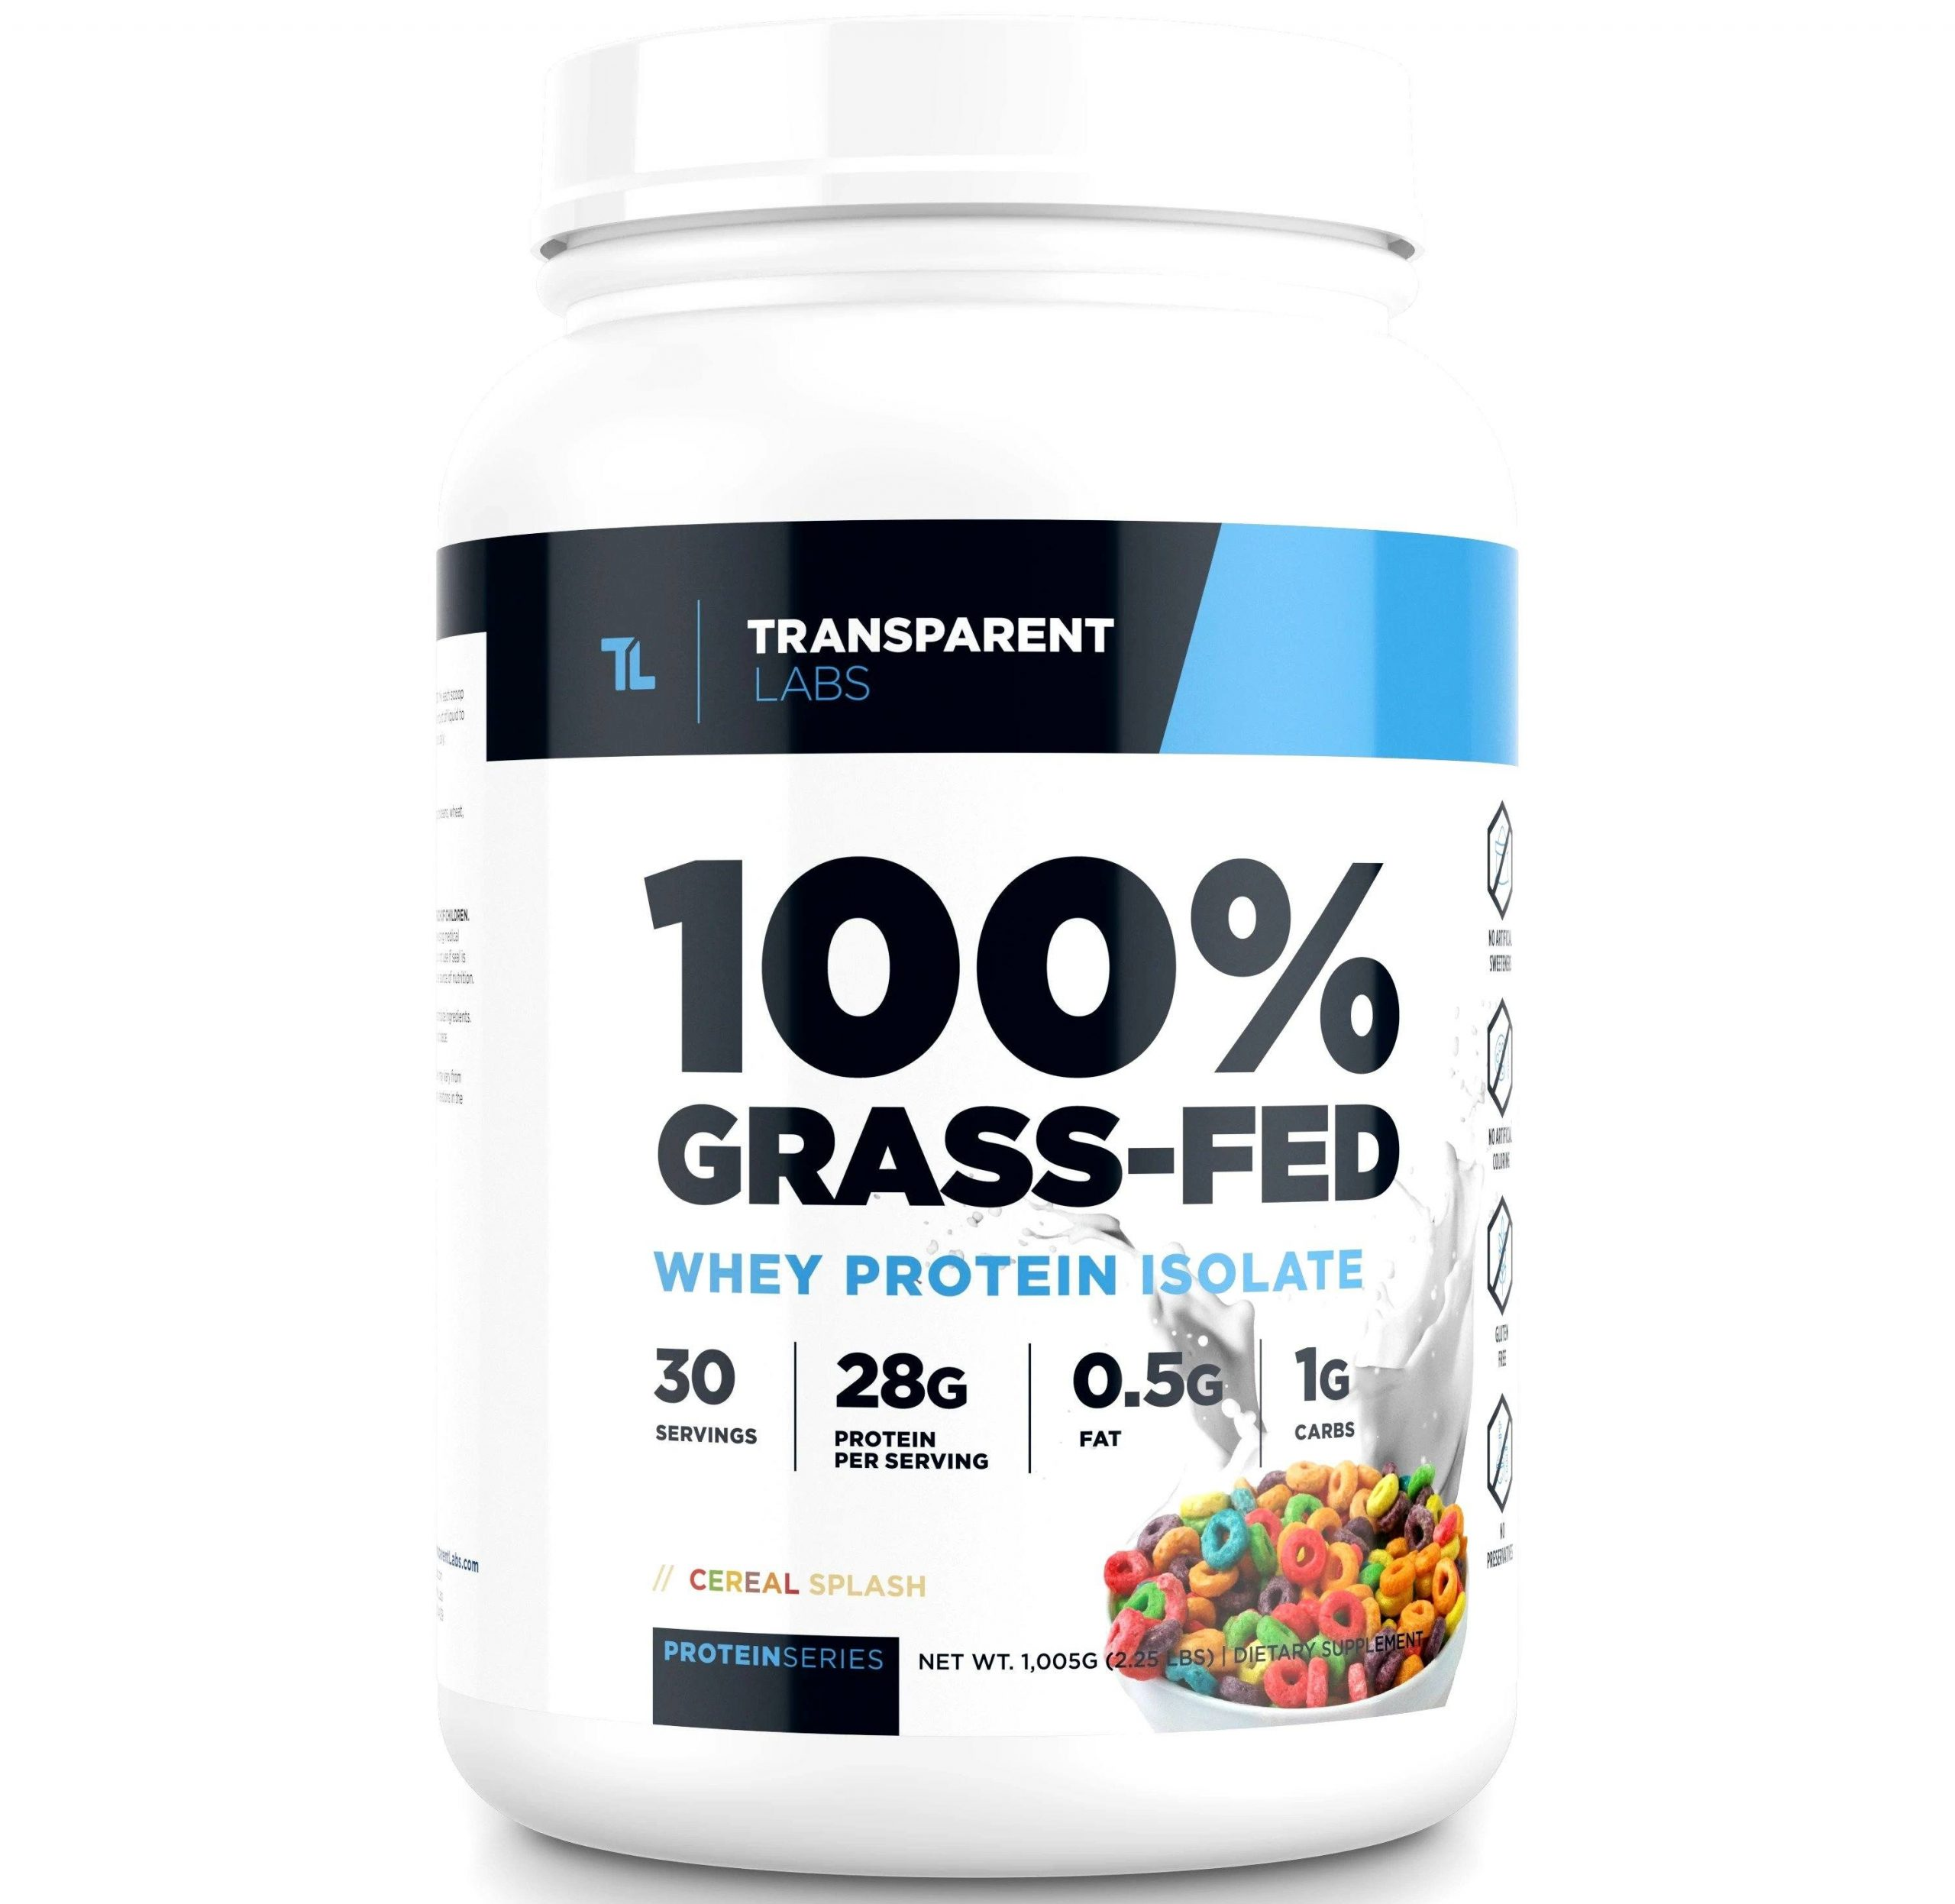 Grass-Fed Transparent Labs